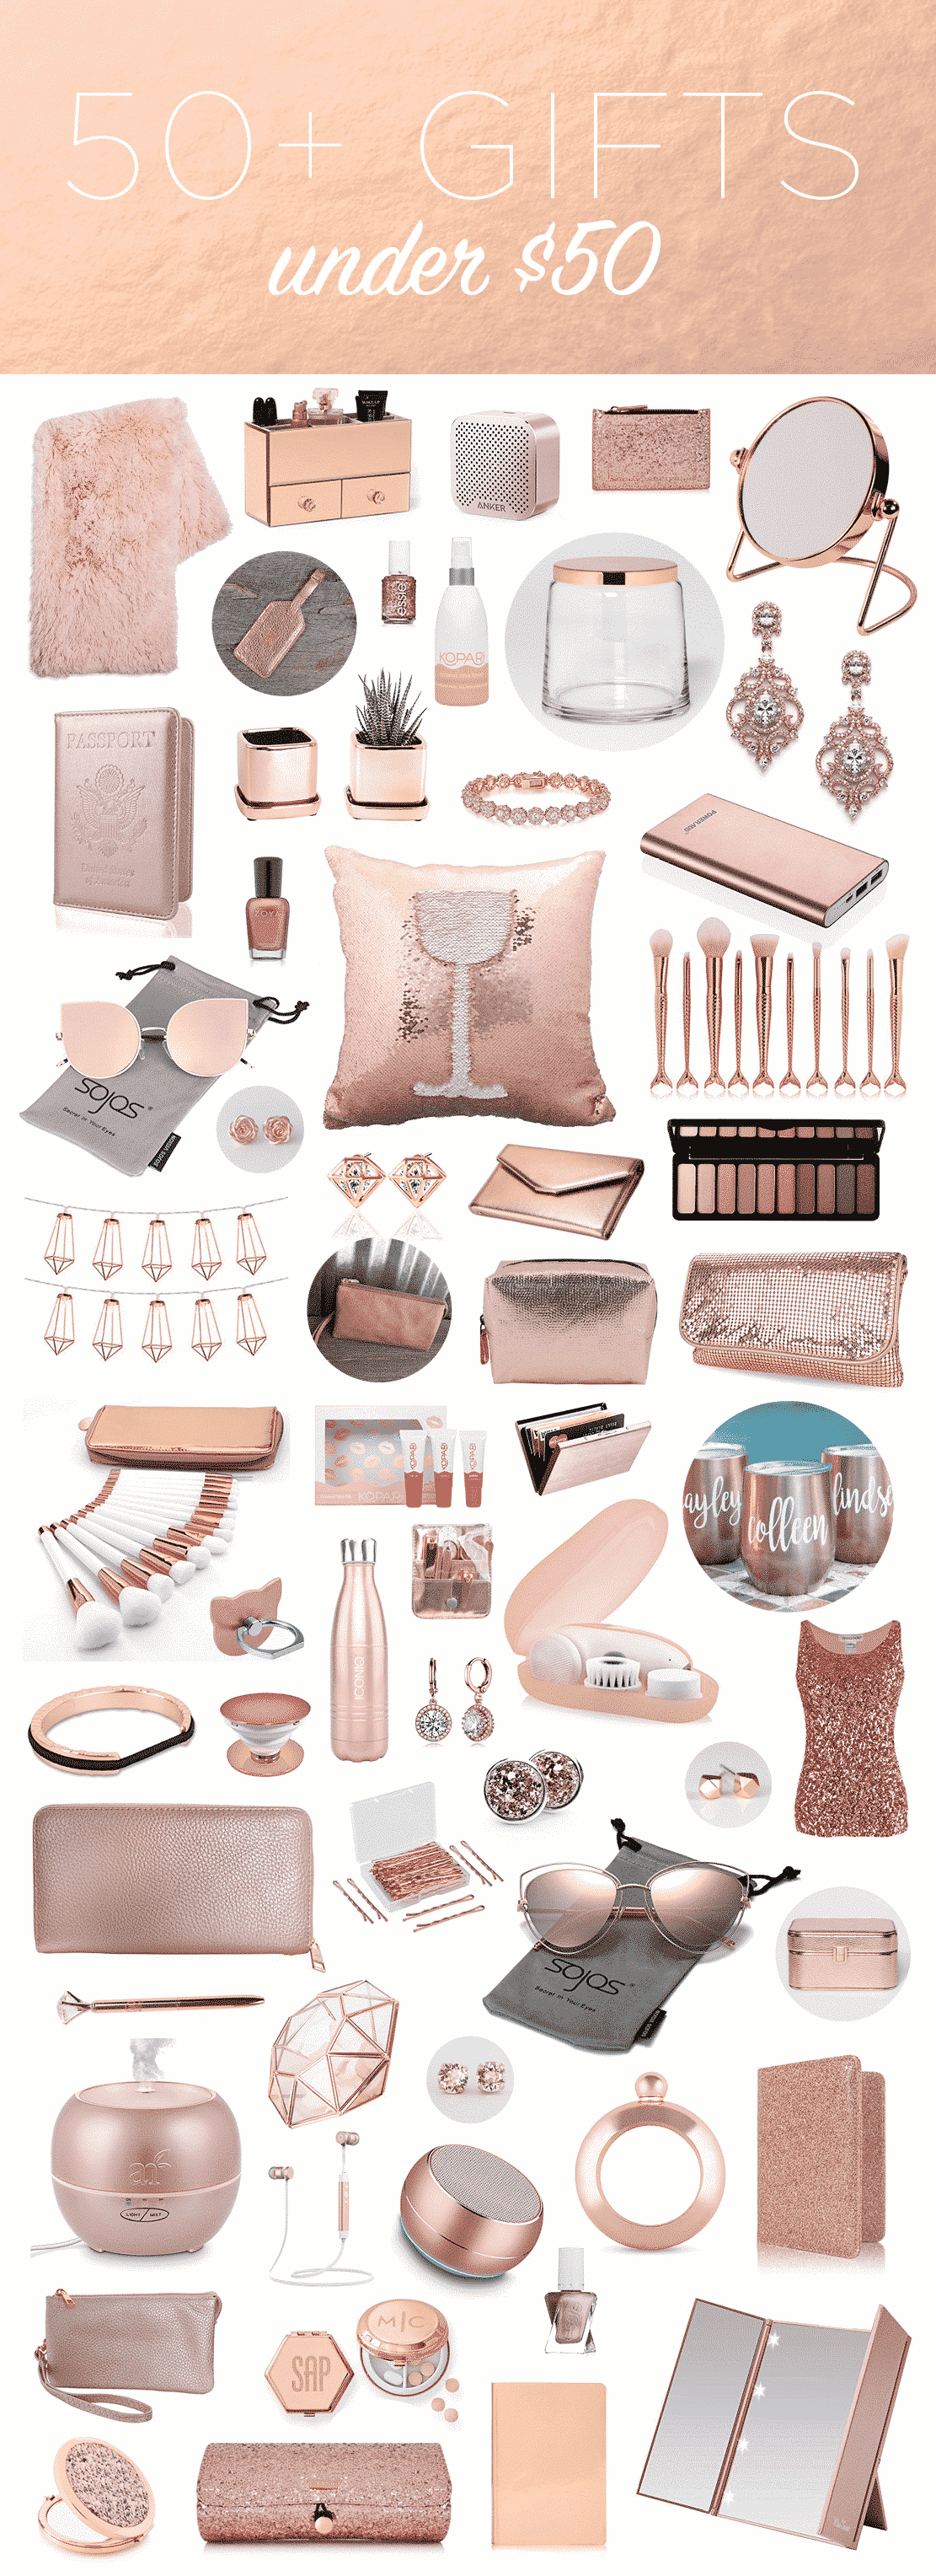 rose gold gifts - Gift Ideas Under $50